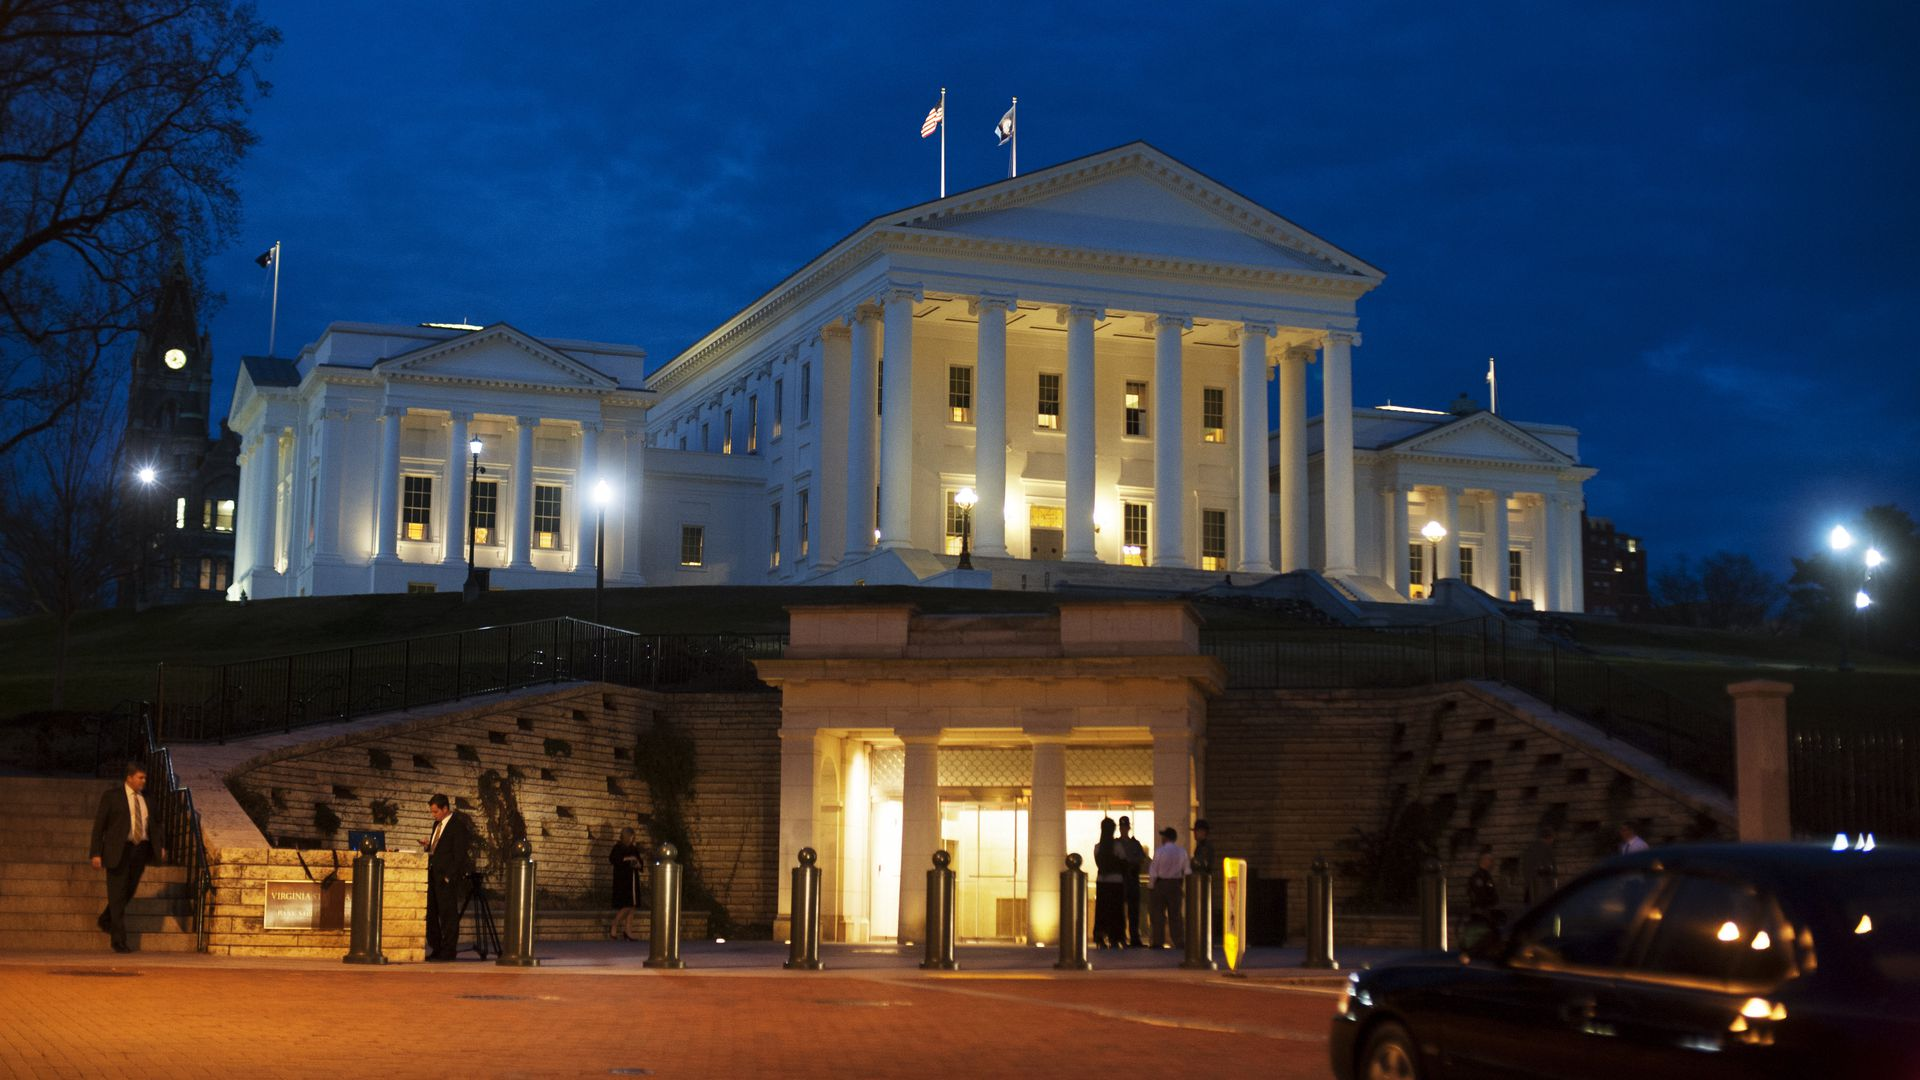 The Virginia state Capitol at night